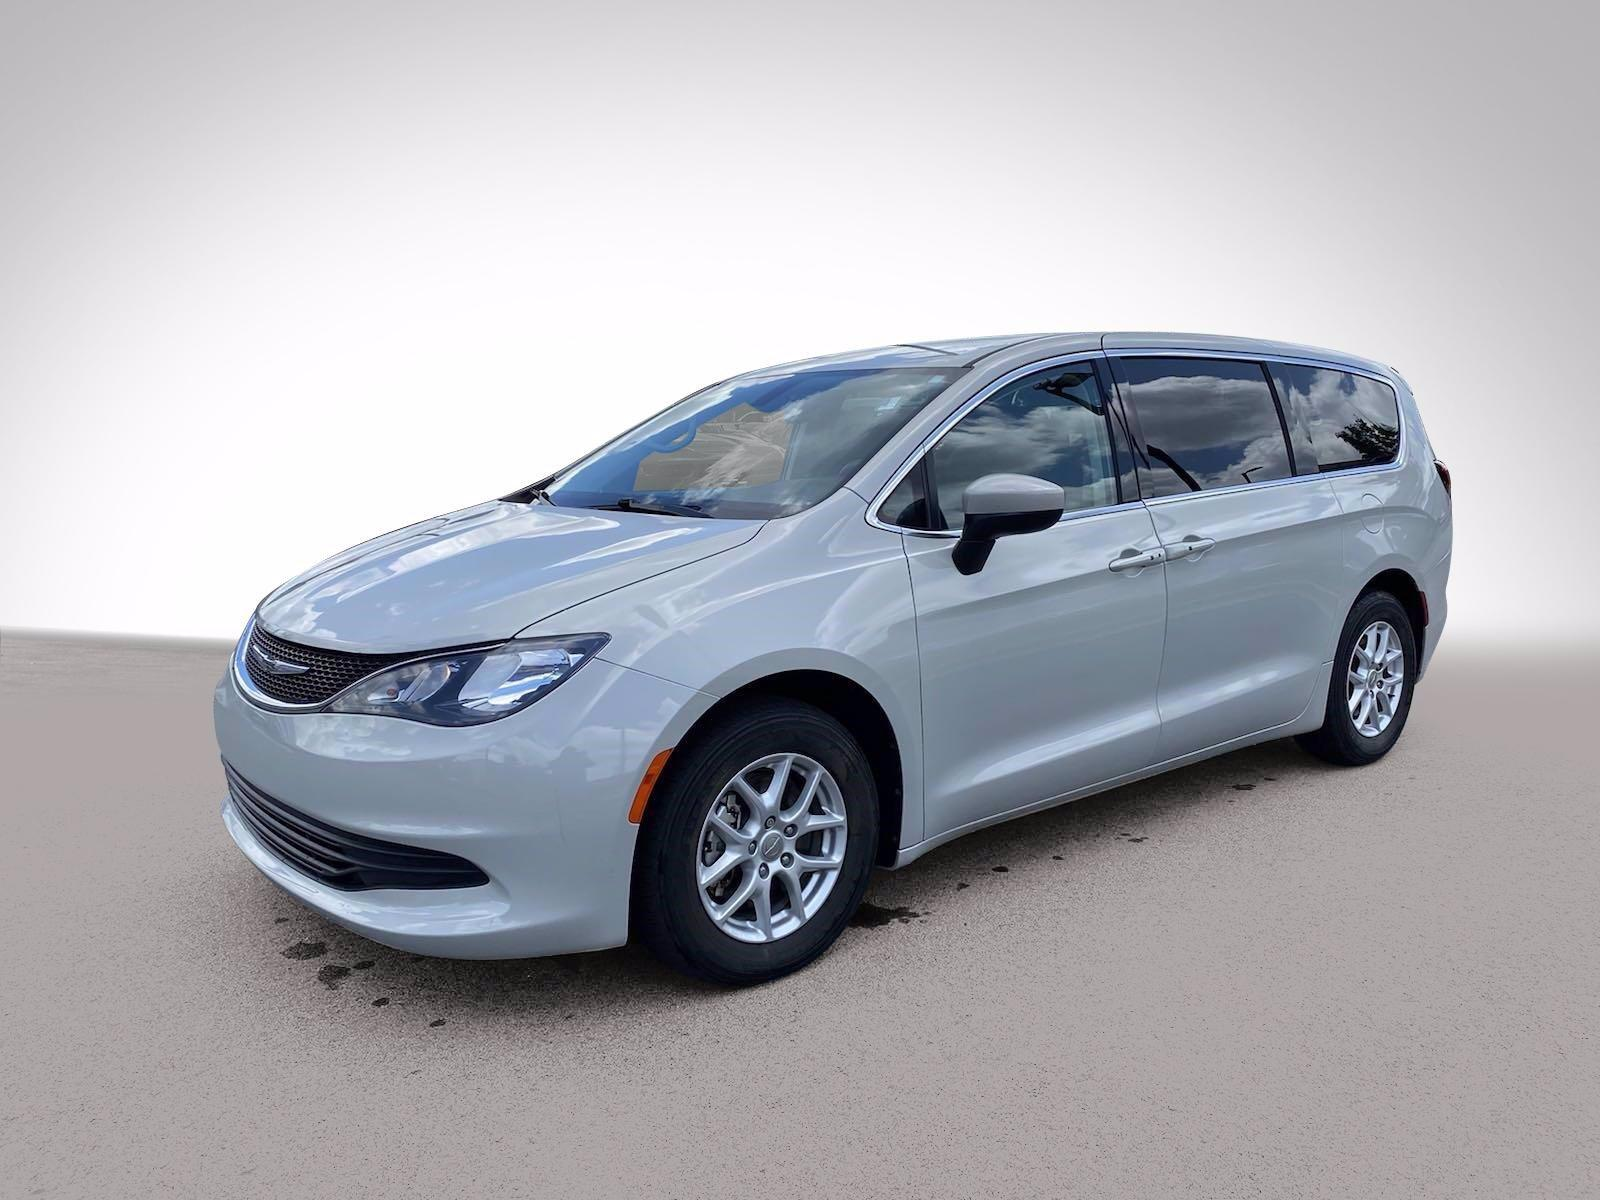 2017 Chrysler Pacifica Vehicle Photo in BUFORD, GA 30518